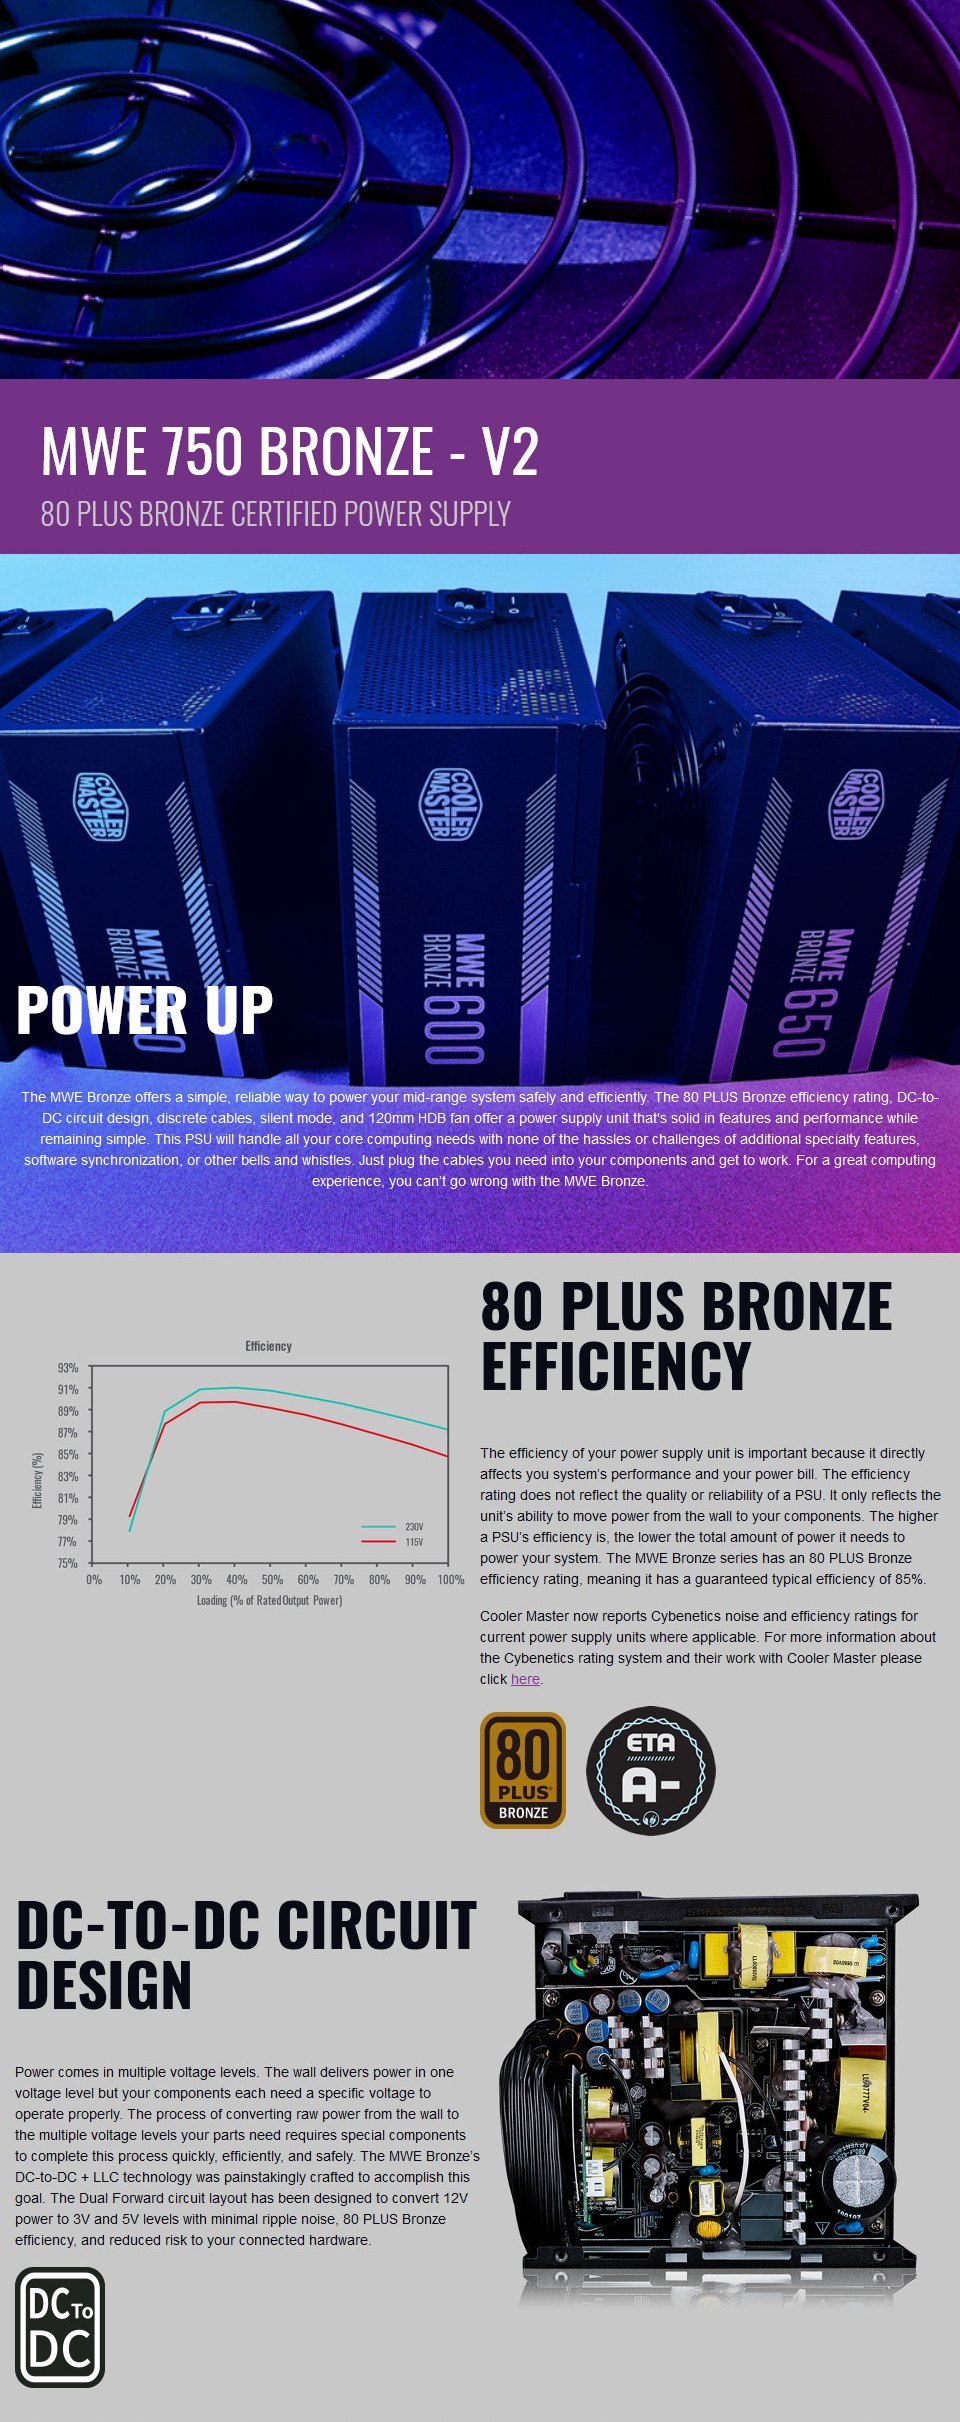 Cooler Master MWE Bronze V2 750W Power Supply features